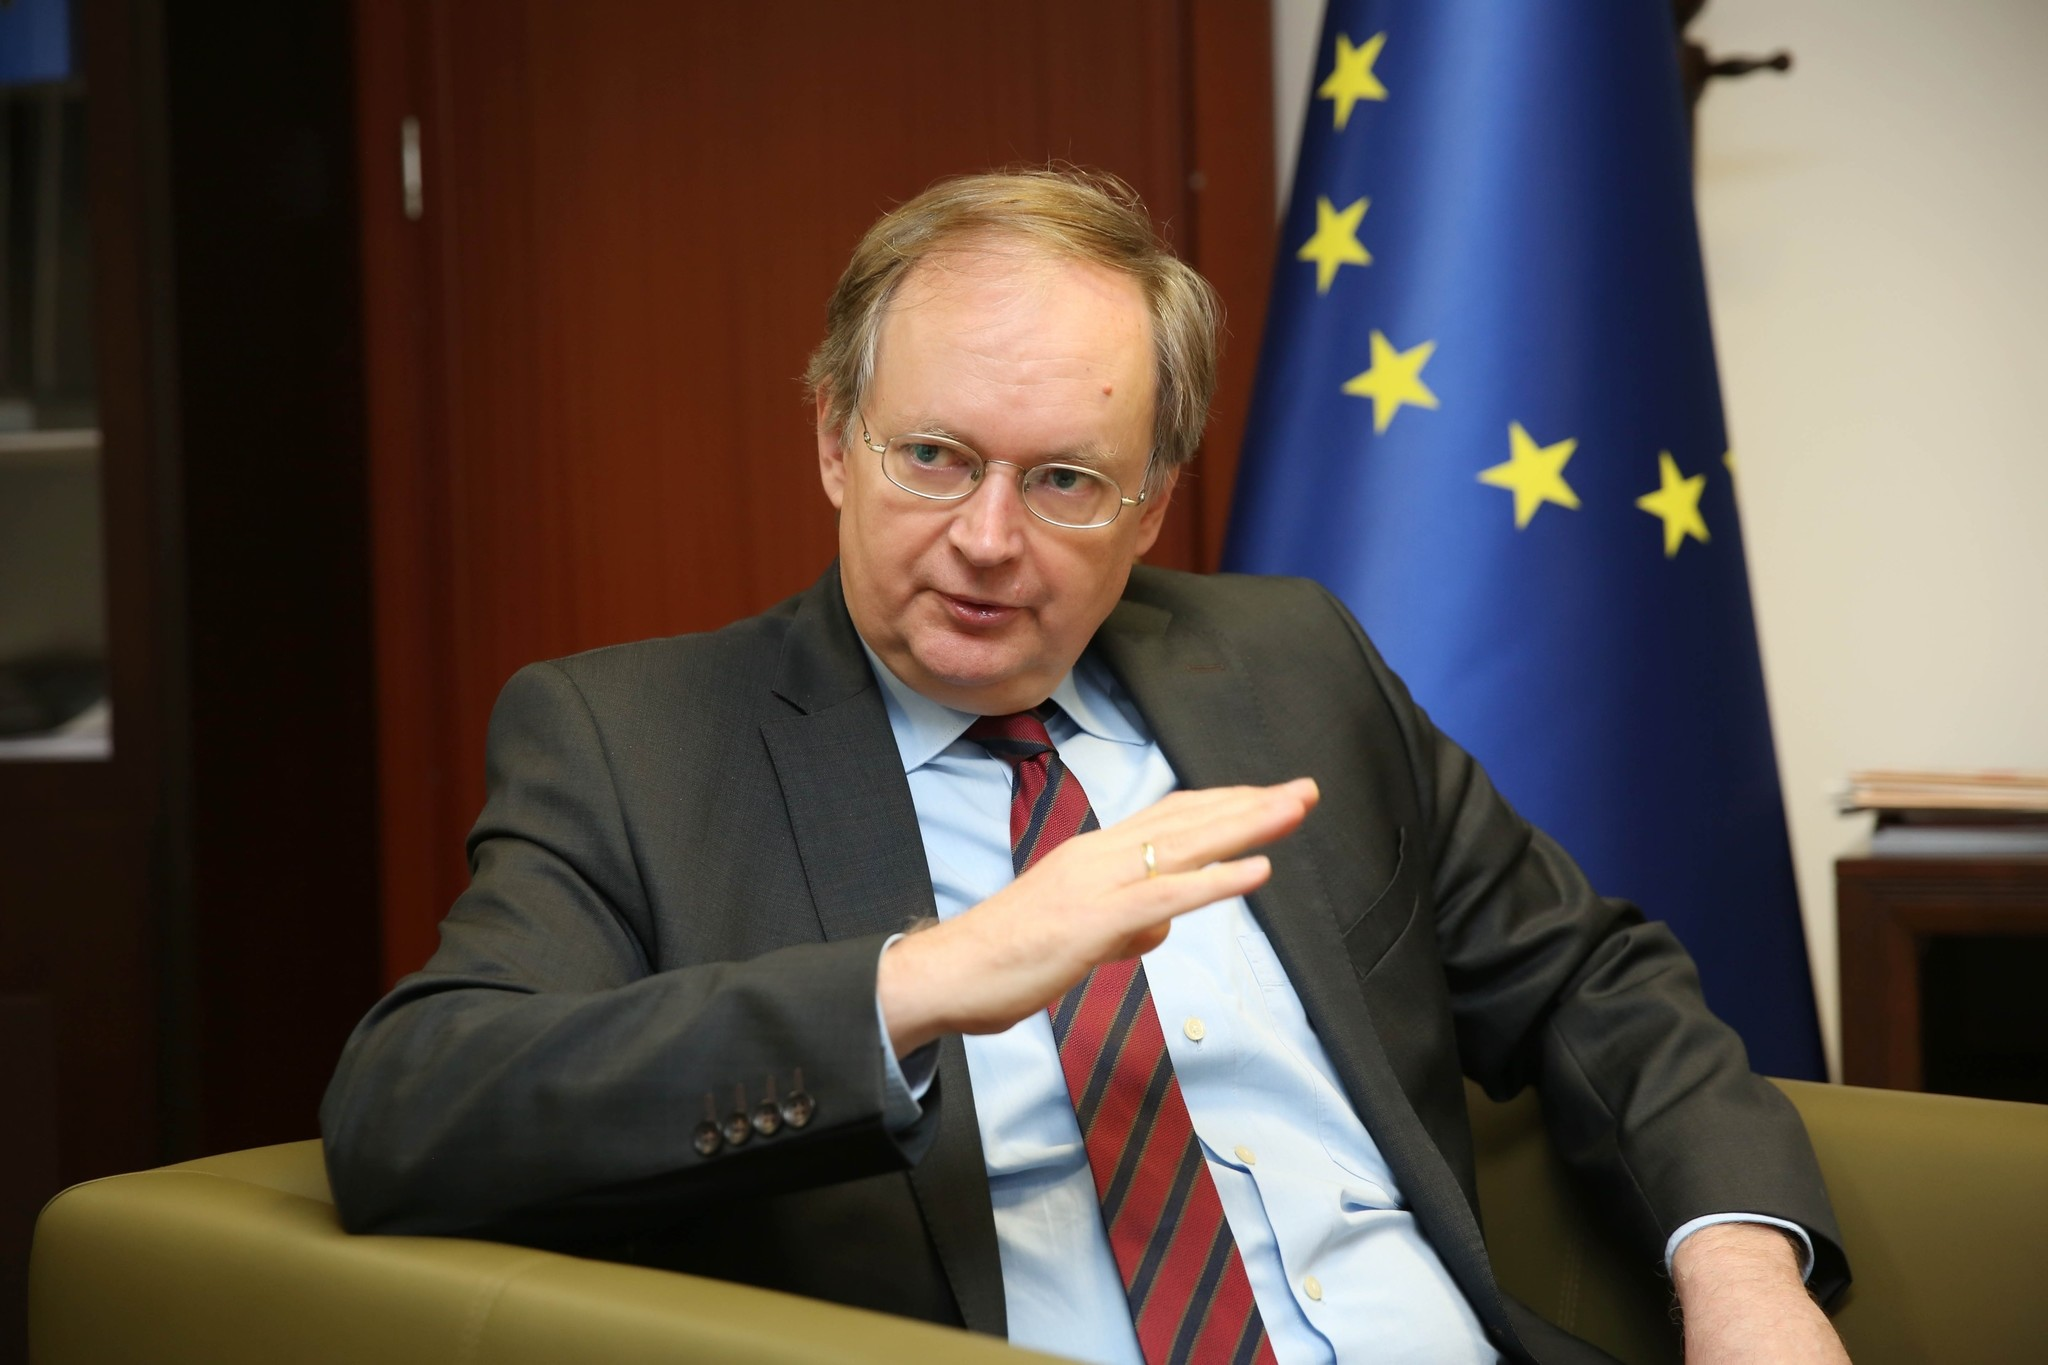 Ambassador Berger said  that Turkey and the EU can u201cabsolutely, find middle ground to move forward in their relations, while adding that the EU understands the problems Turkey is facing, with serious terrorist threats from outside and inside.